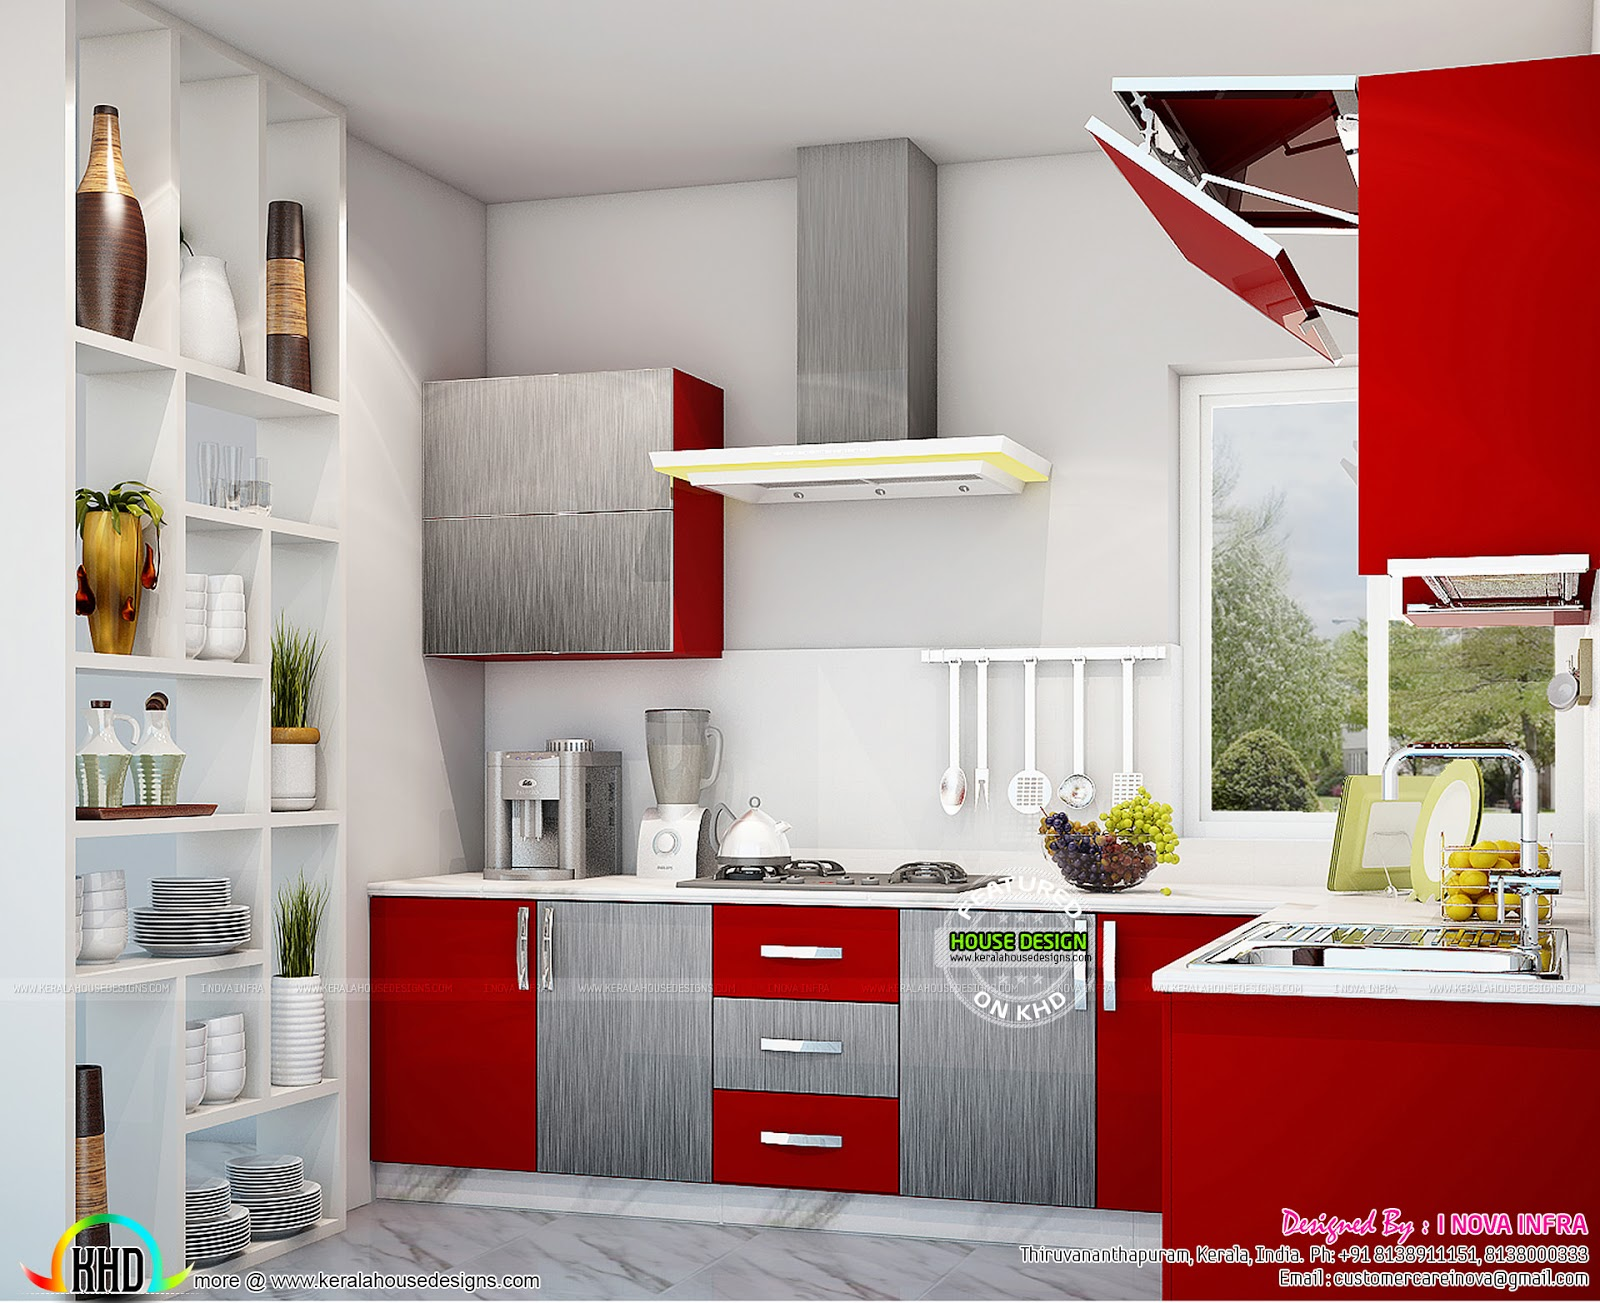 Kitchen interior works at trivandrum kerala home design for Kitchen interior designs pictures